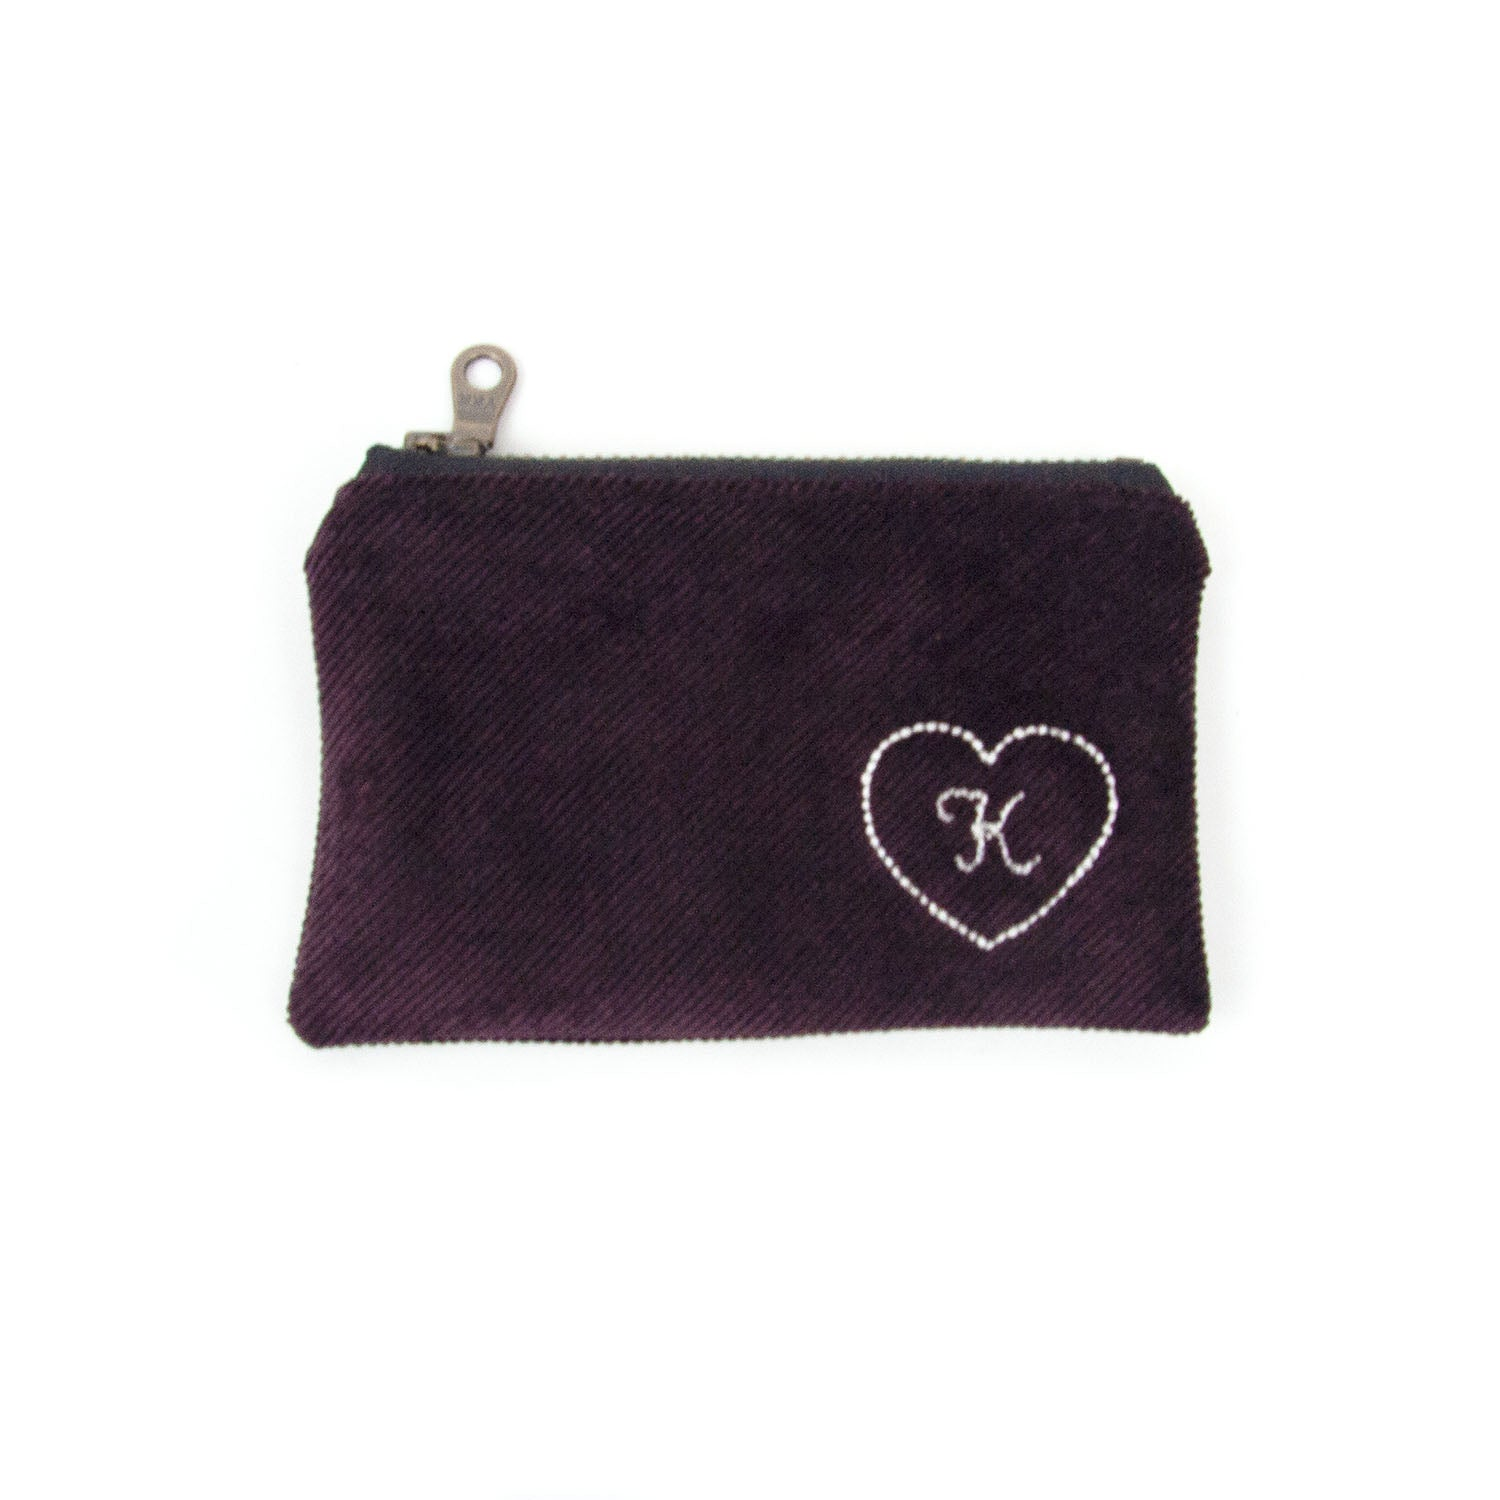 Personalized Coin Purse - Eggplant